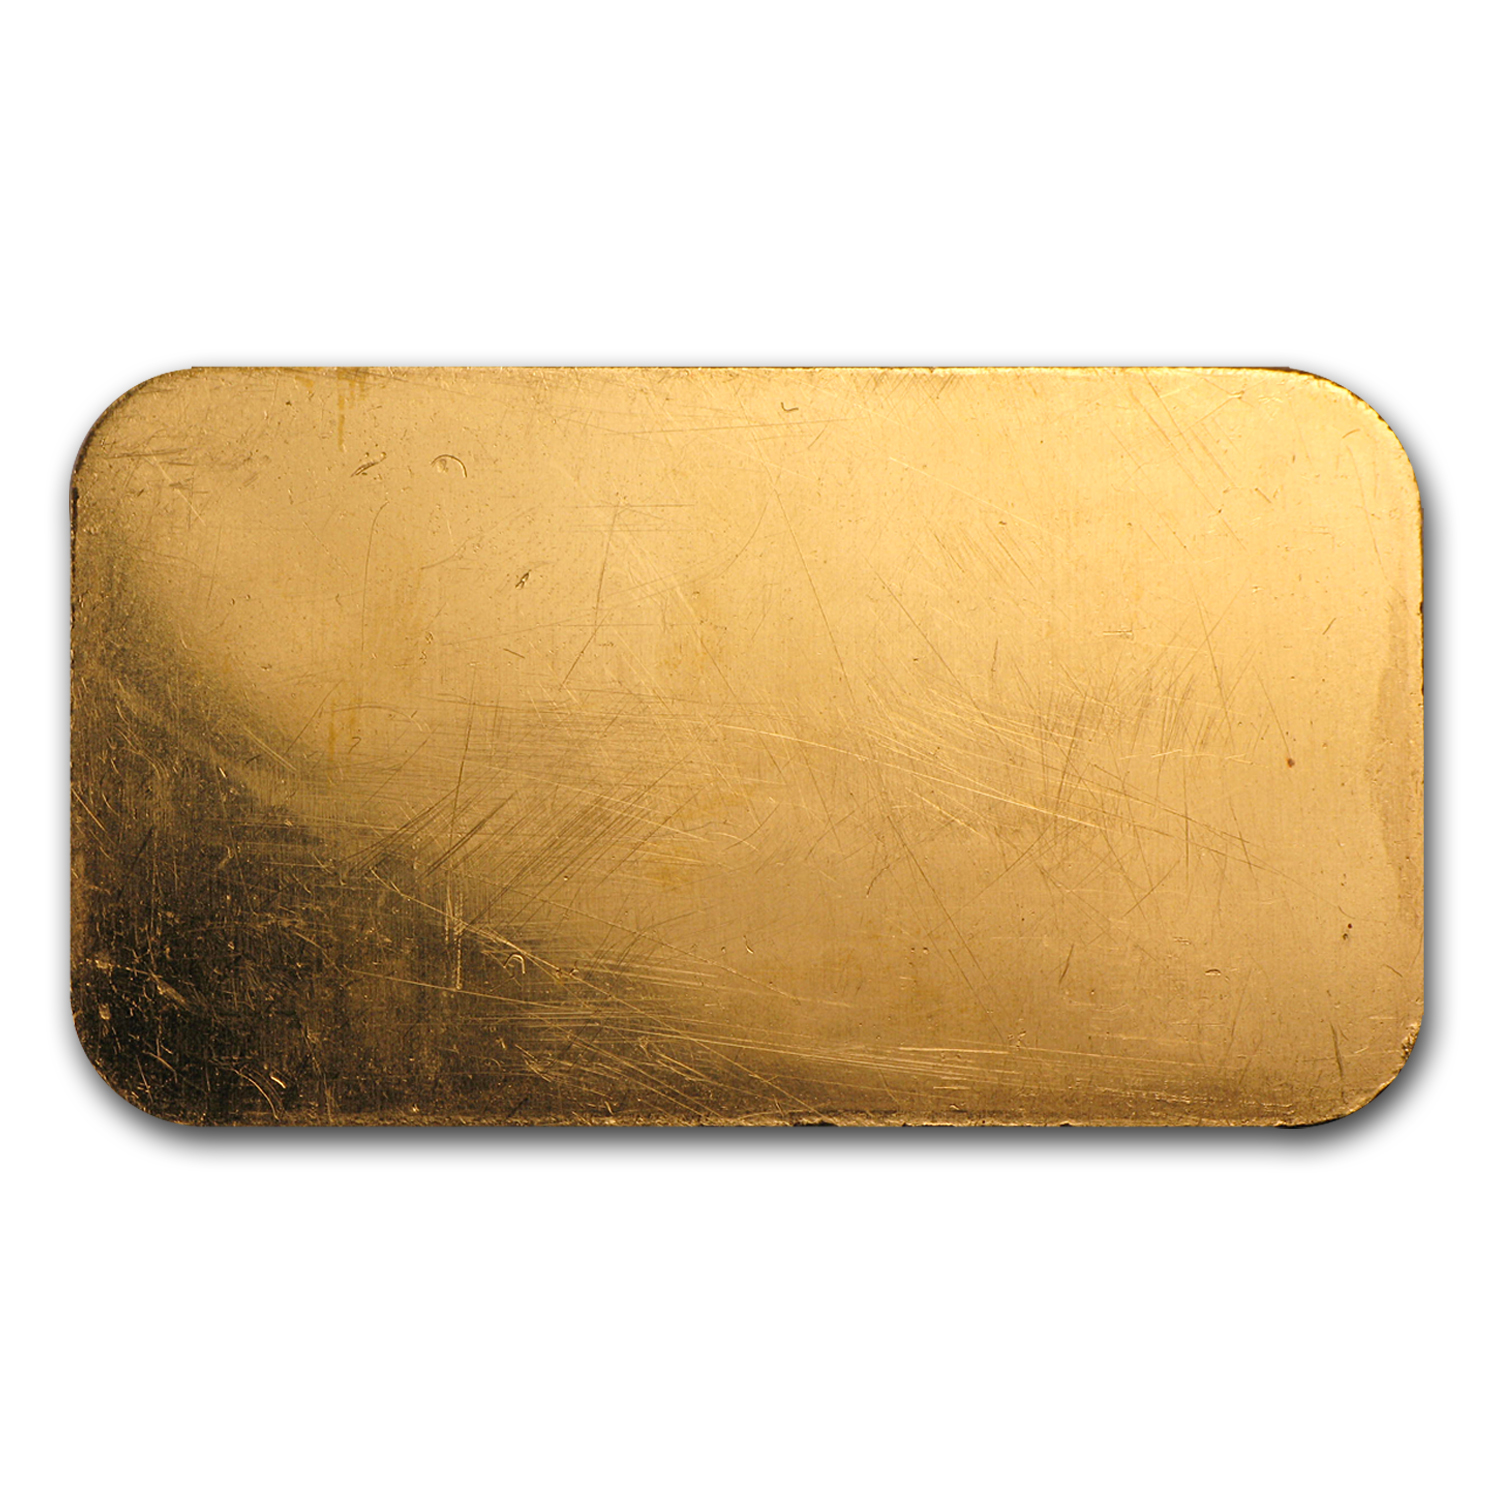 1 oz Gold Bar - Johnson Matthey & Mallory (1974)